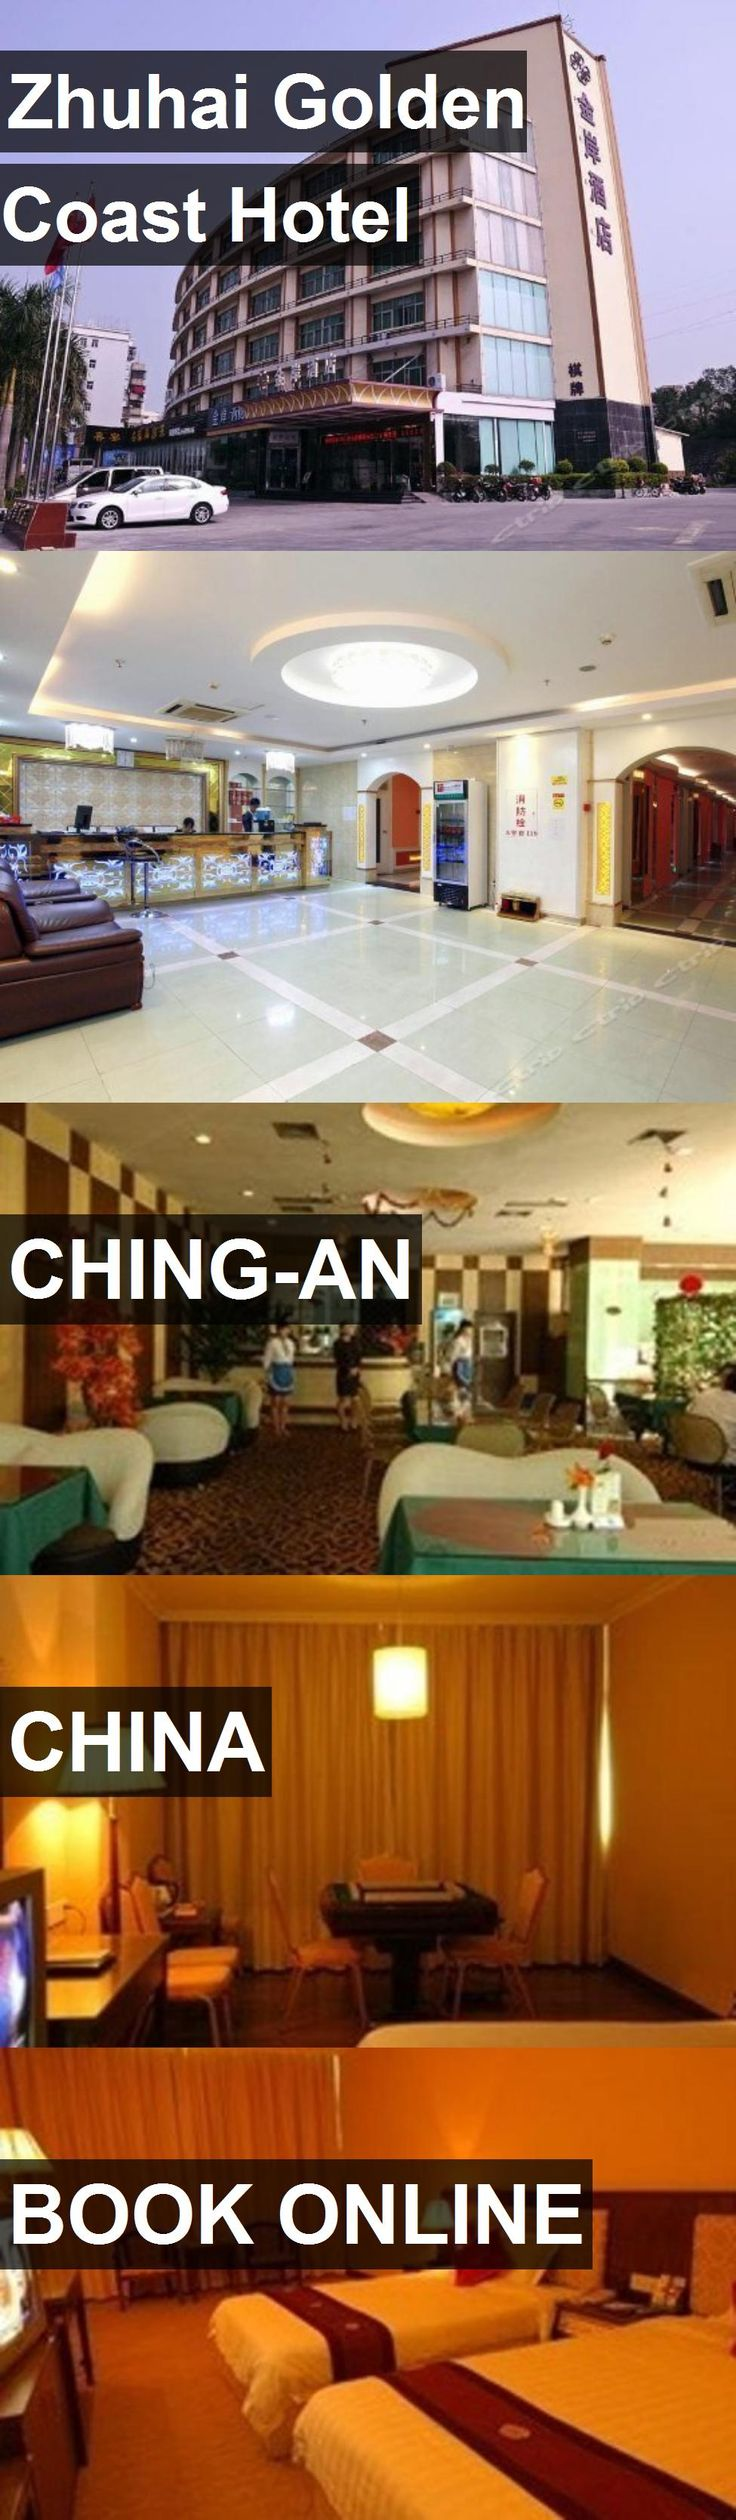 Zhuhai Golden Coast Hotel in Ching-an, China. For more information, photos, reviews and best prices please follow the link. #China #Ching-an #travel #vacation #hotel